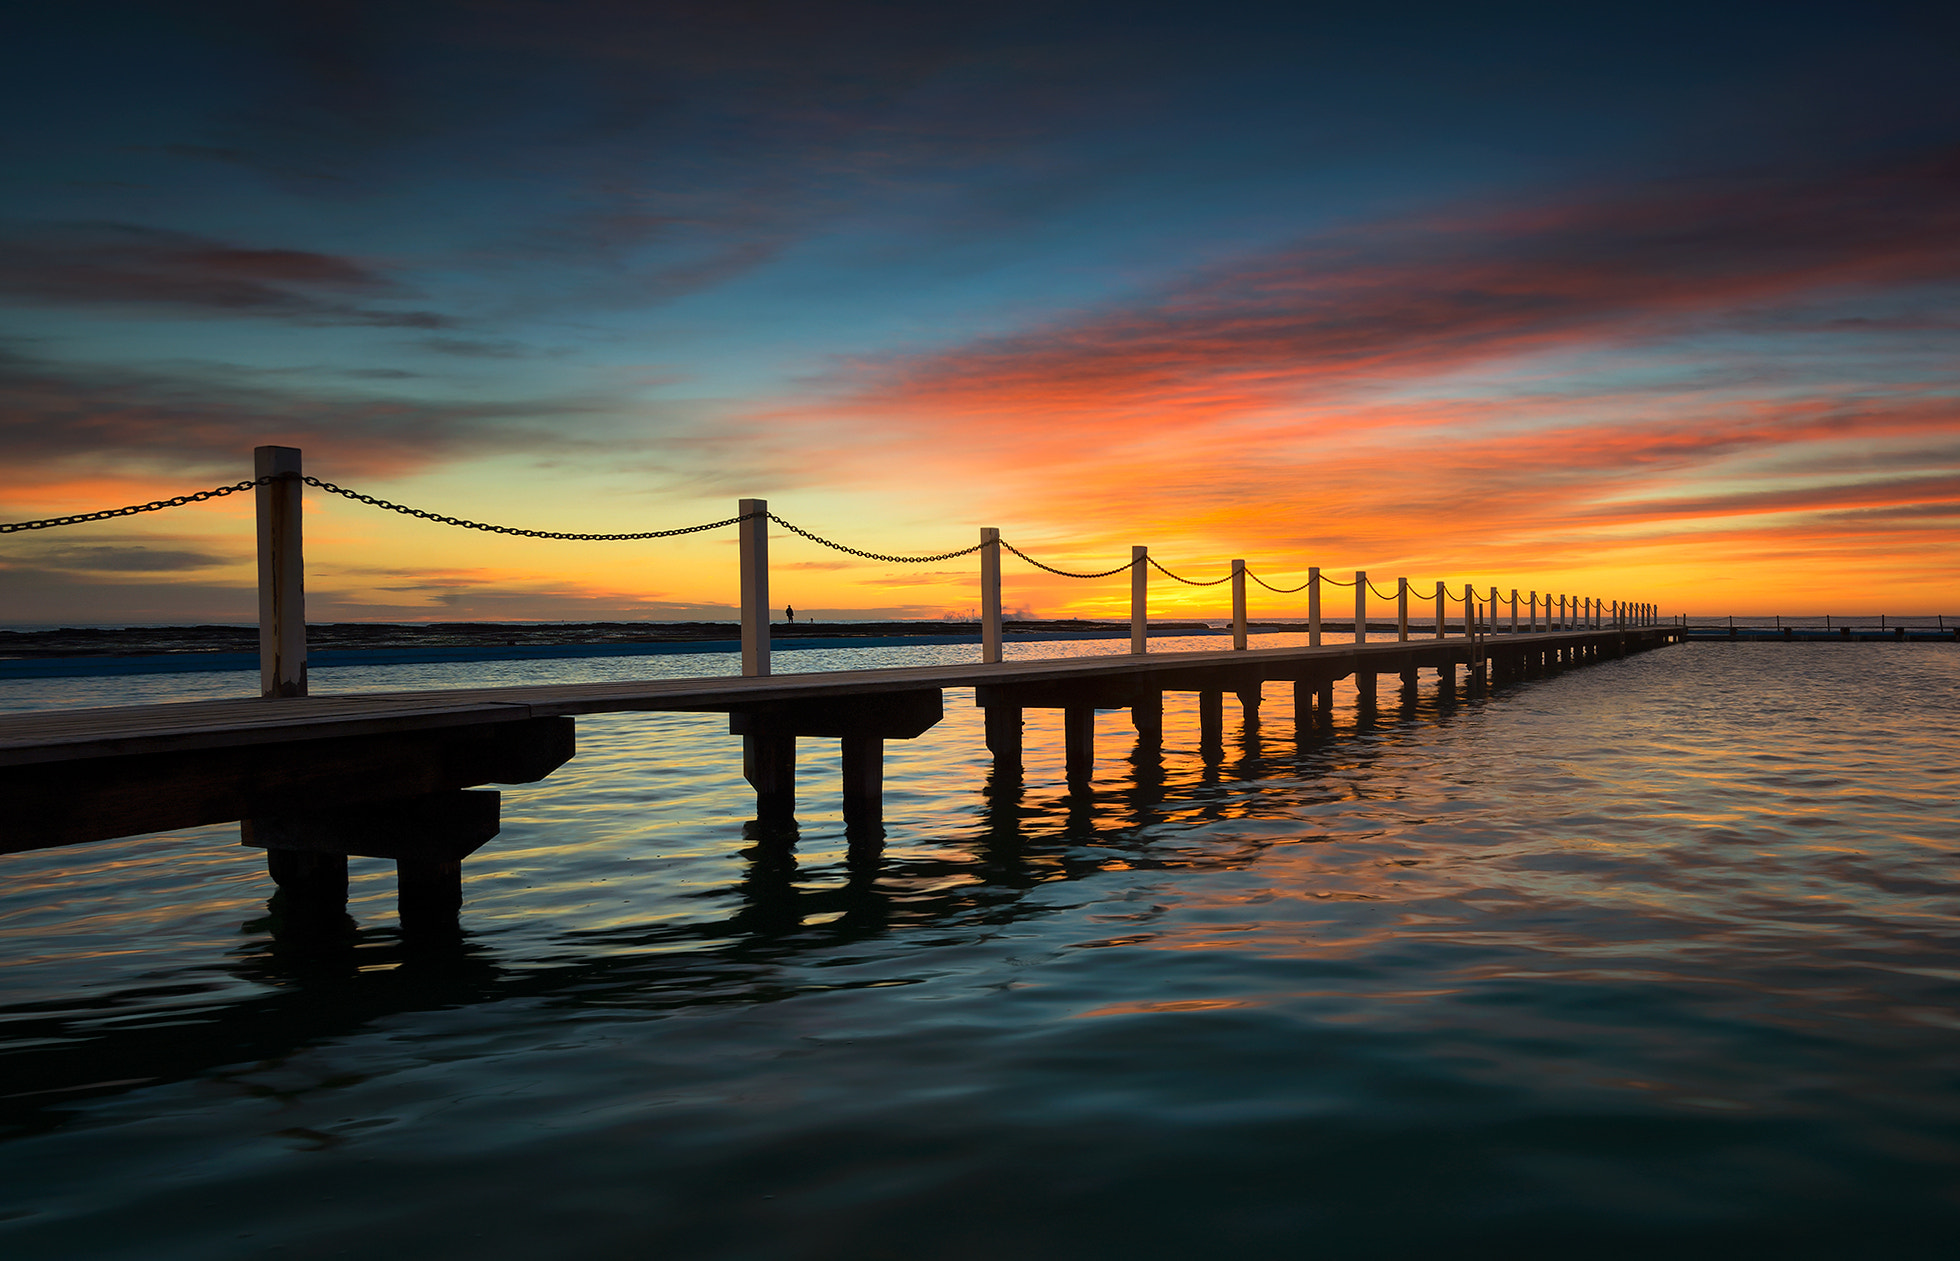 Photograph Narrabeen #2 by Goff Kitsawad on 500px